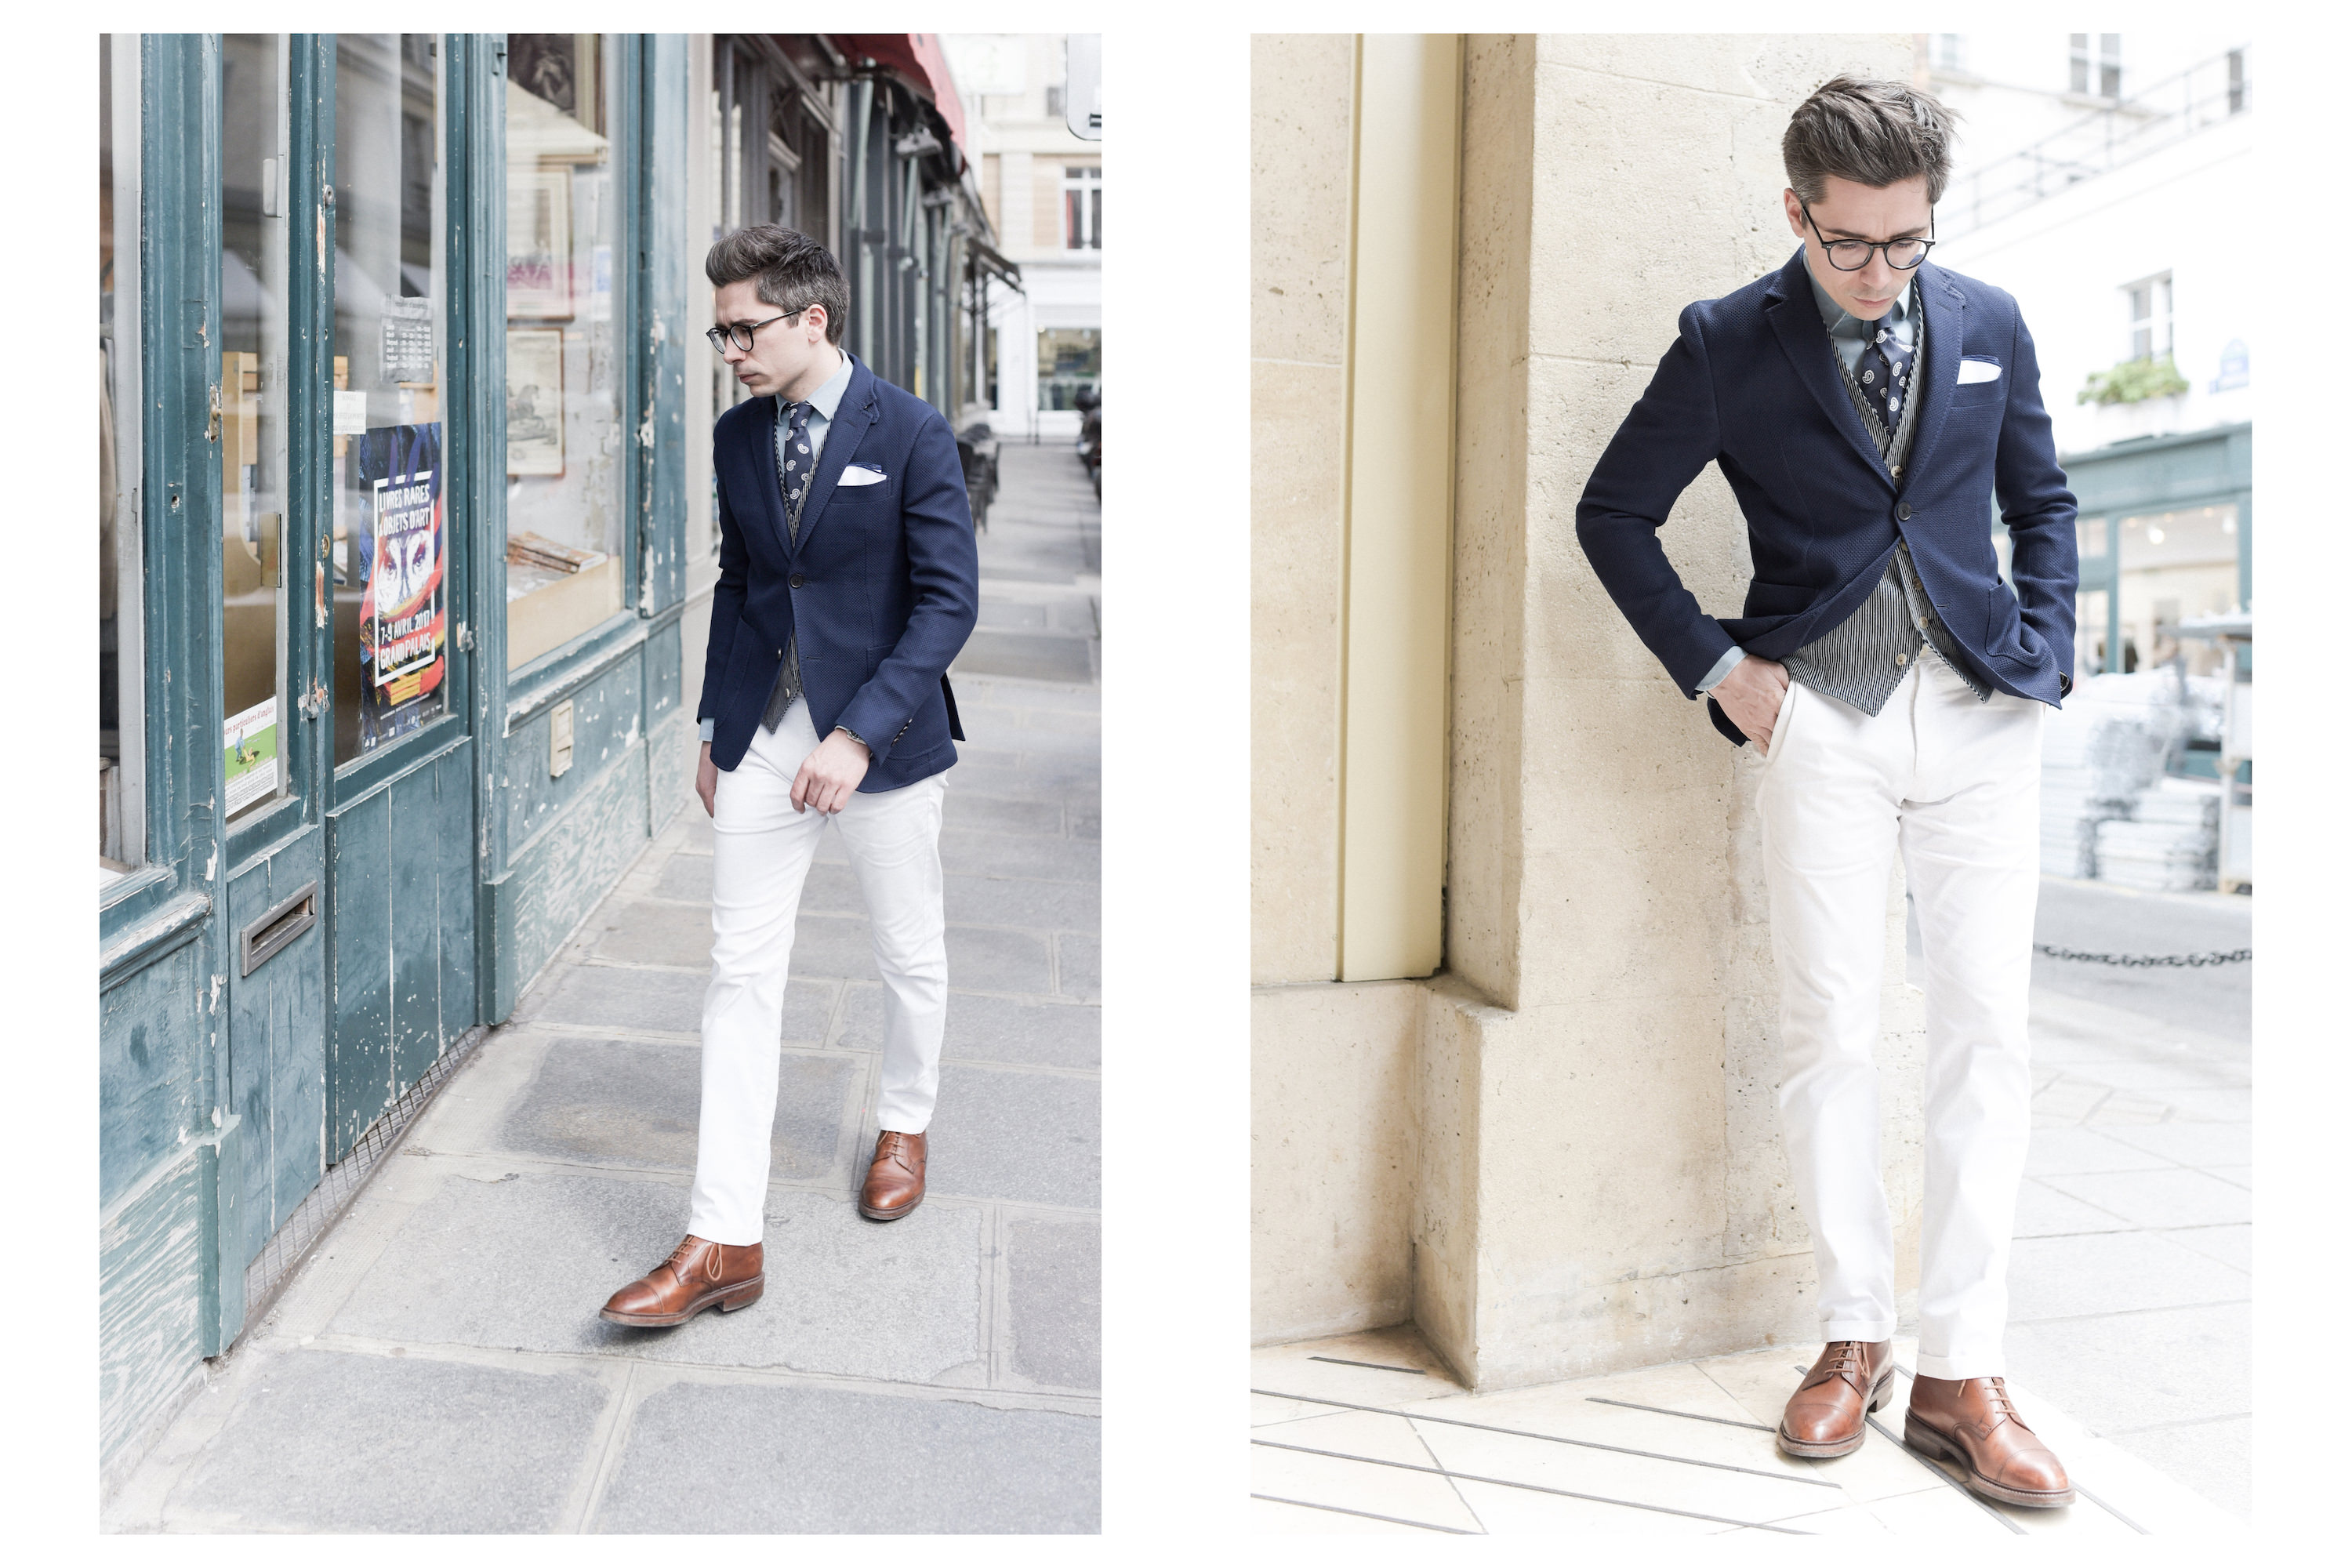 Tenue avec pantalon blanc fashion designs for Pantalon interieur homme